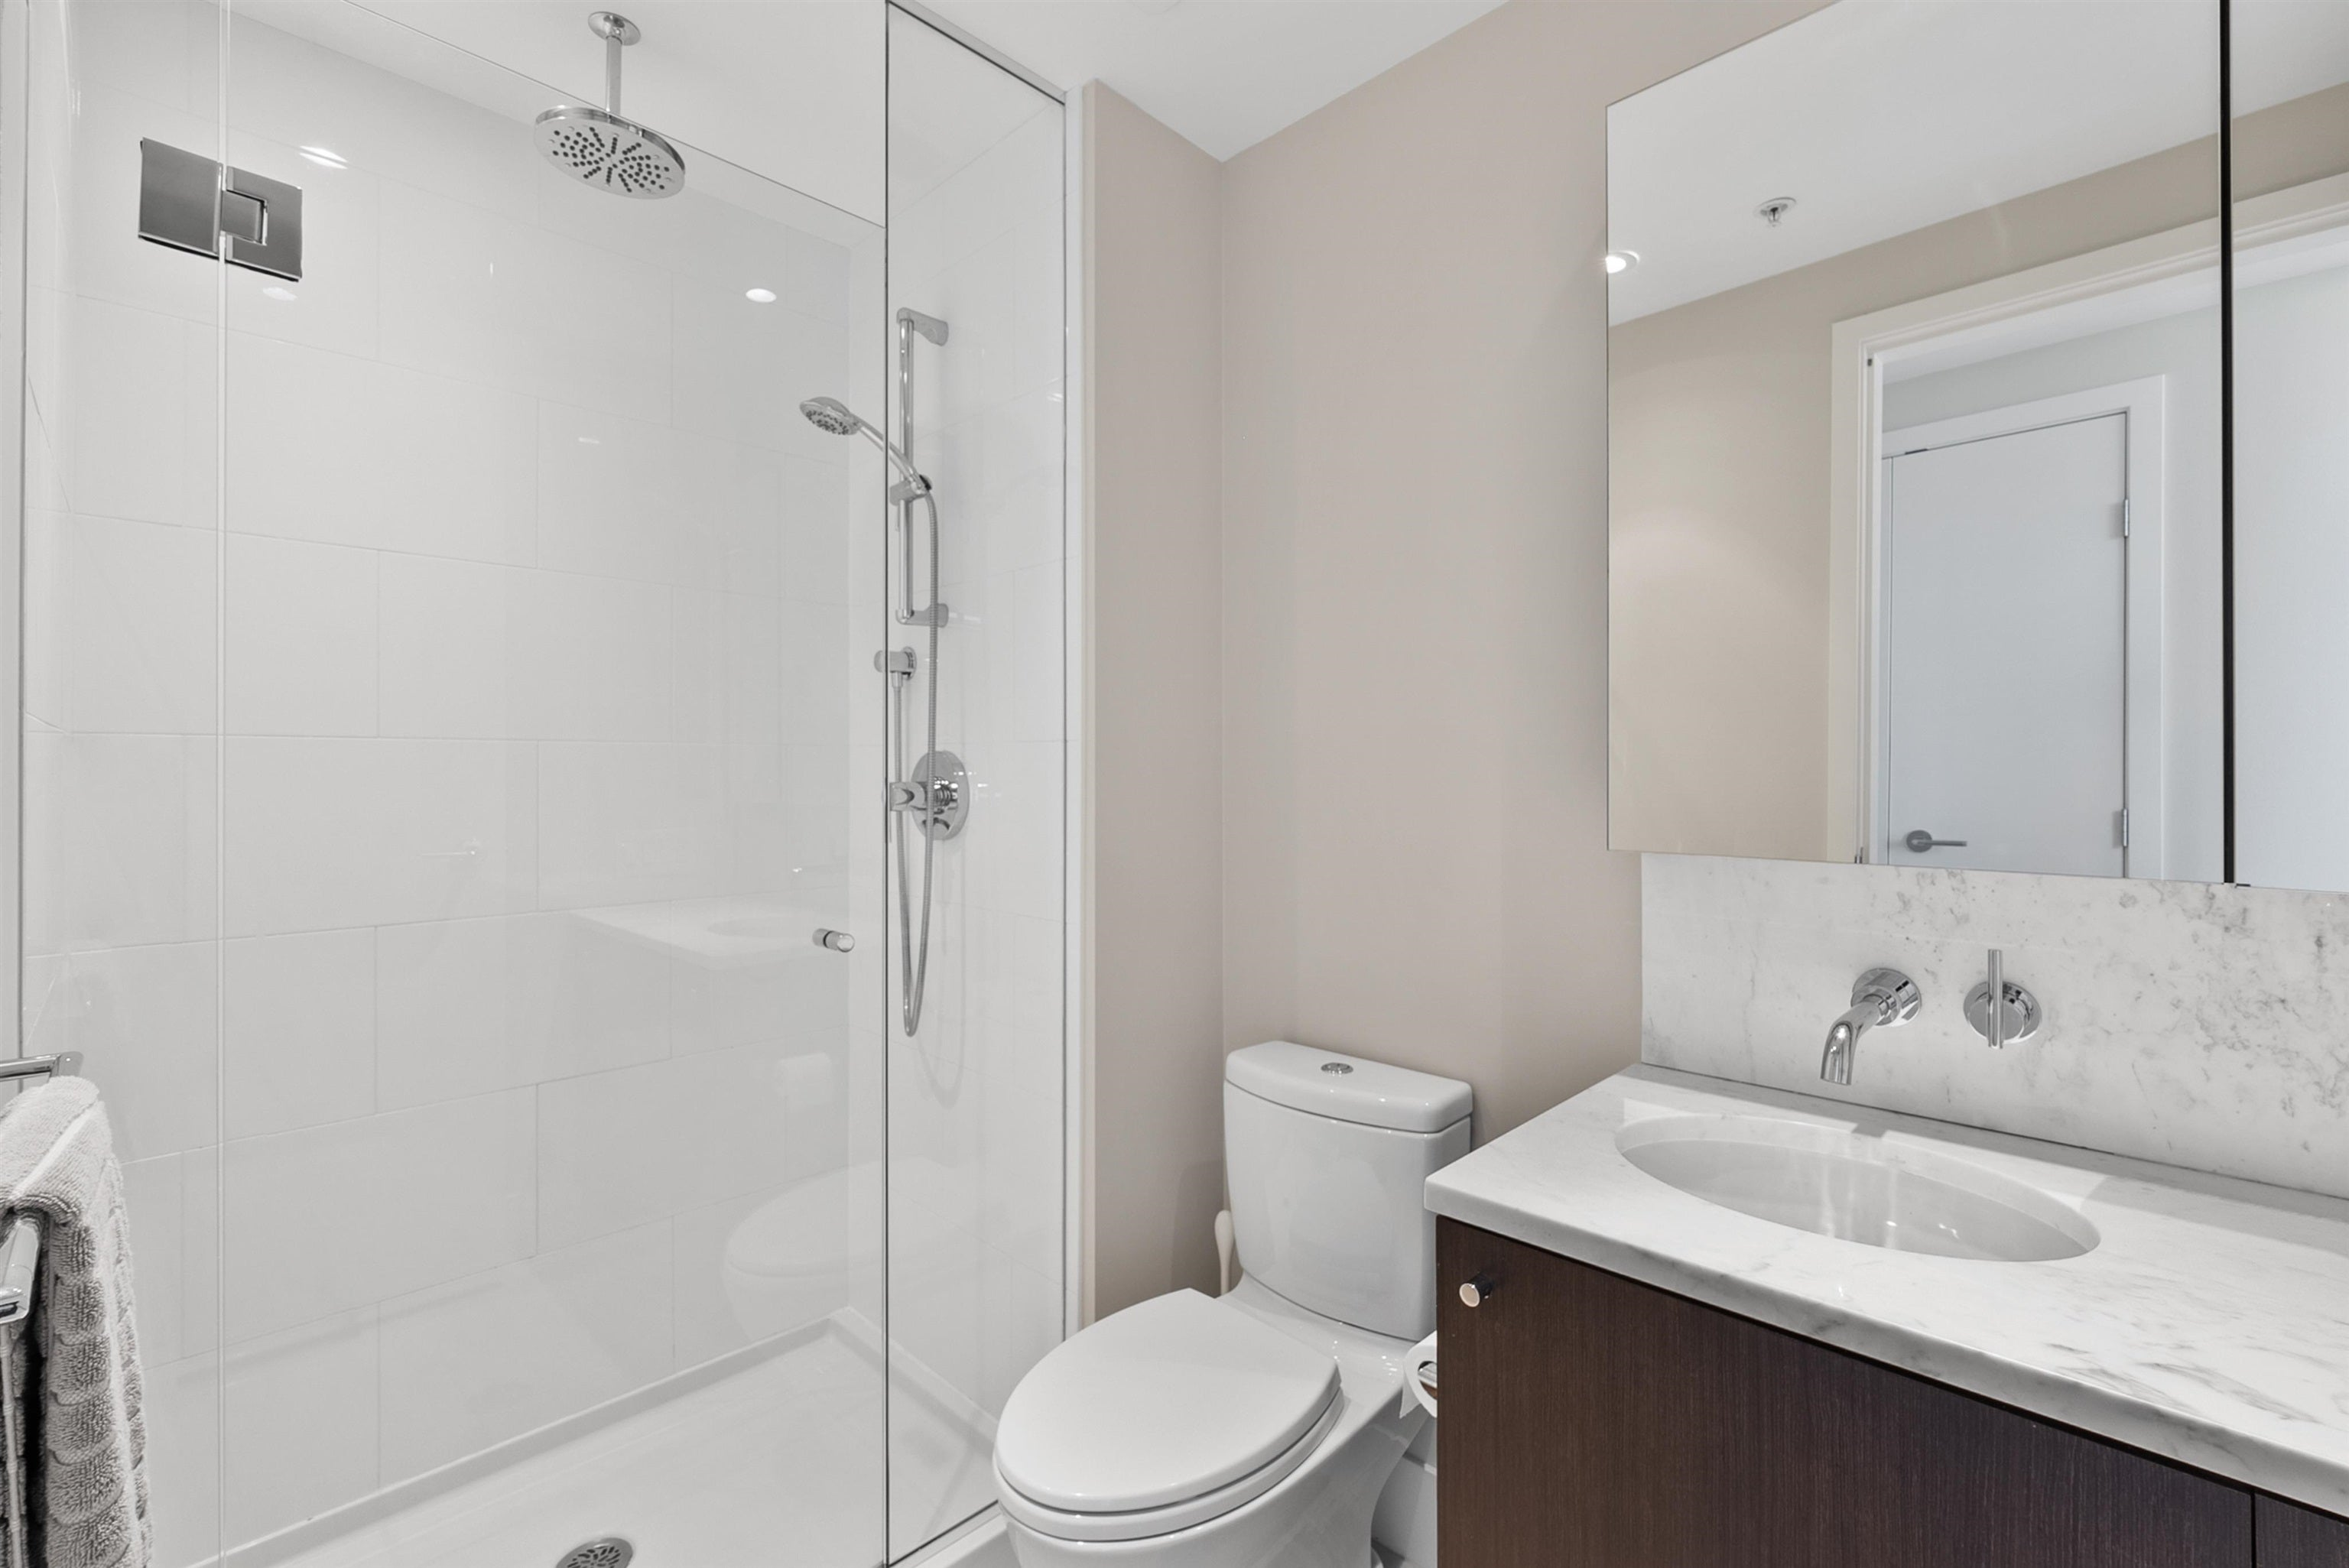 503 150 W 15TH STREET - Central Lonsdale Apartment/Condo for sale, 2 Bedrooms (R2624732) - #17